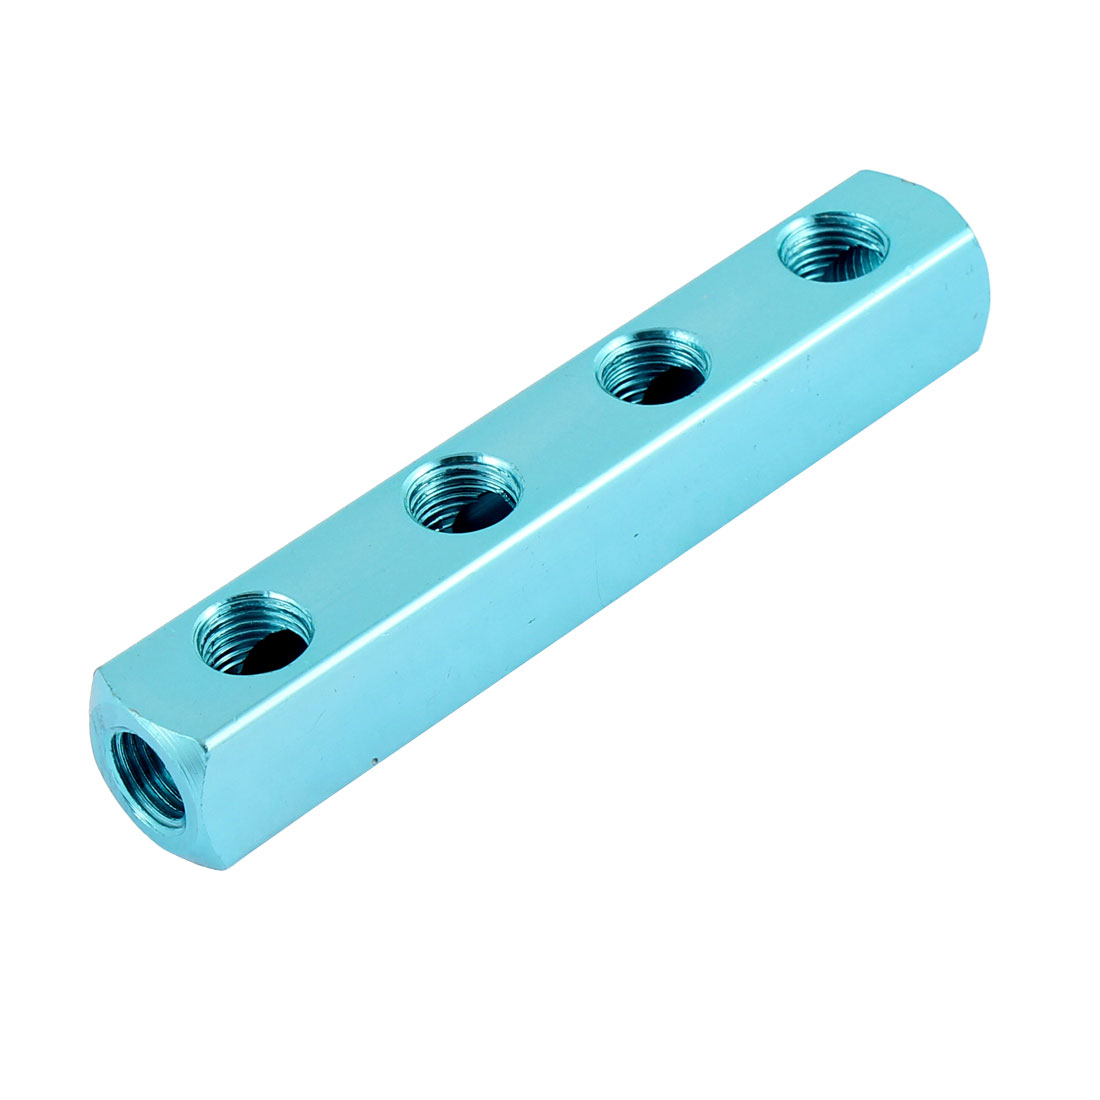 Aluminum 1/4BSP 11.5mm 4 Way Threaded Hose Pipe Inline Manifold Block Splitter Connector for Air Compressor